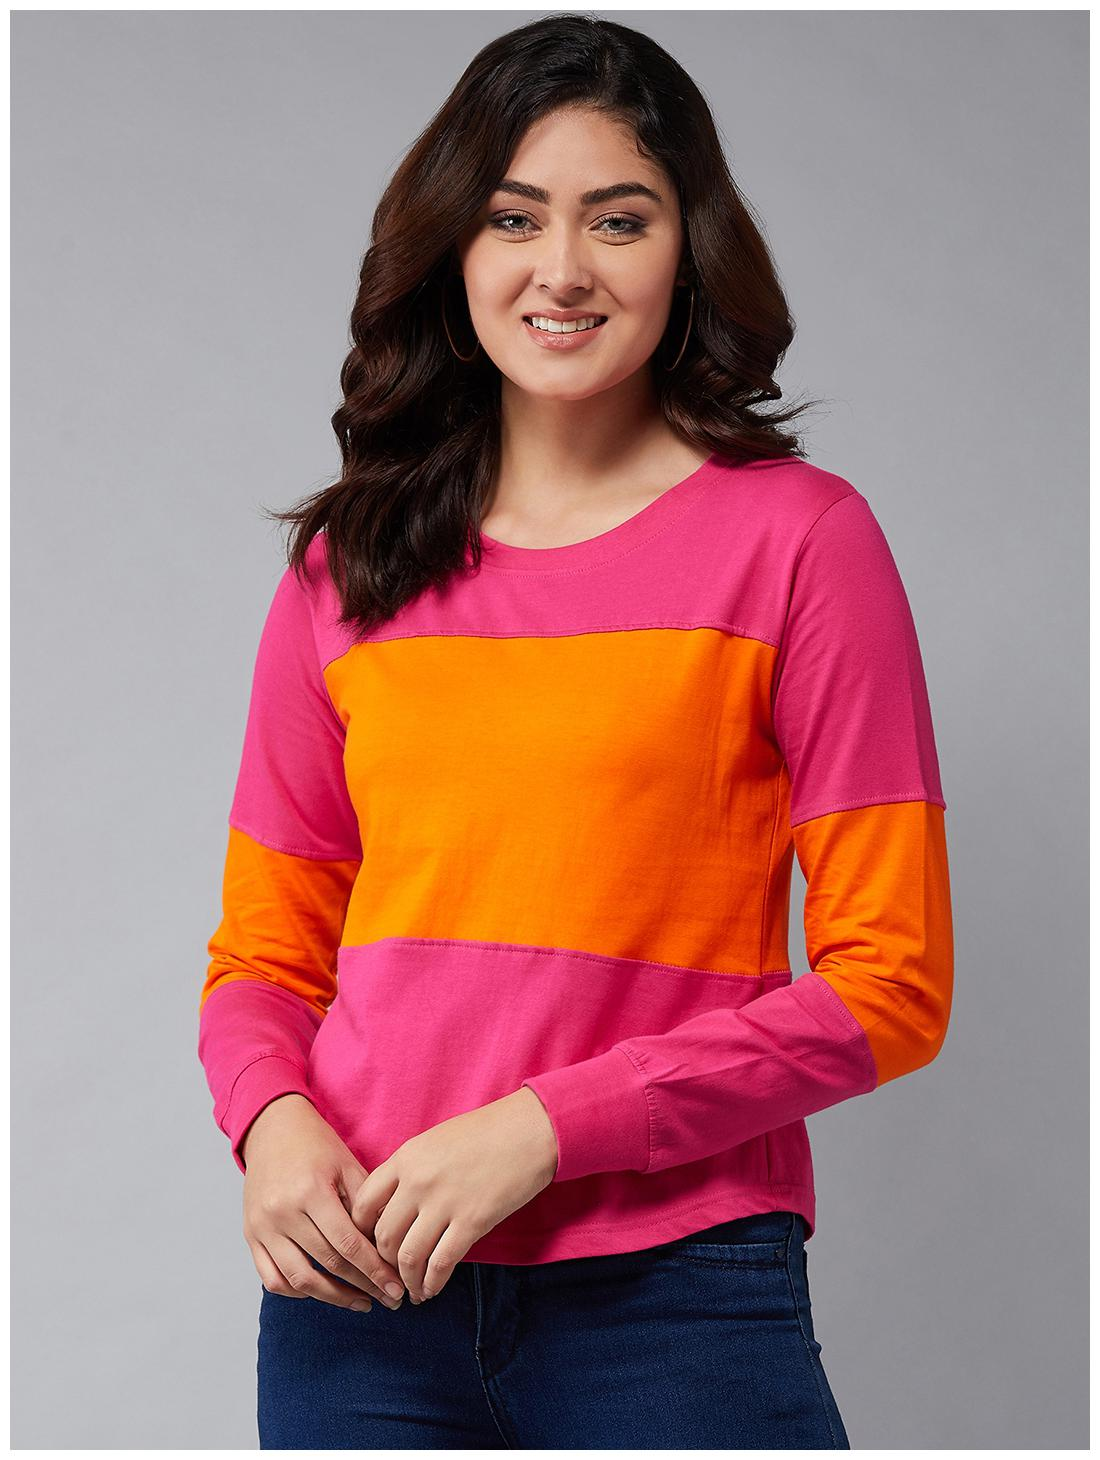 https://assetscdn1.paytm.com/images/catalog/product/A/AP/APPTHE-DRY-STATTHE-87886609A7BFB/1591769911841_0..jpg